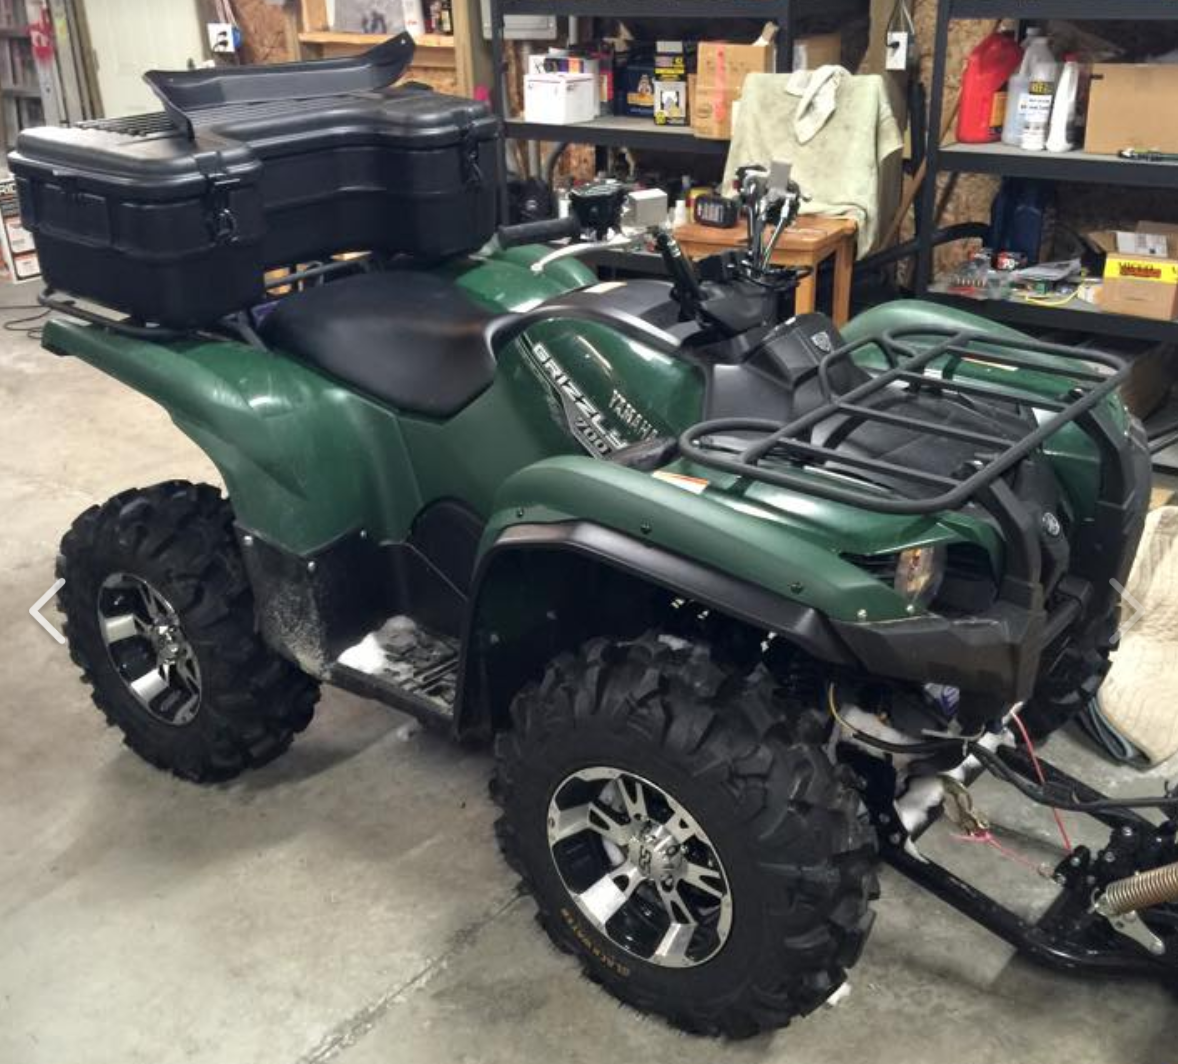 Yamaha Grizzly 700 For Sale >> Grizzly rear seat / box - Yamaha Grizzly ATV Forum